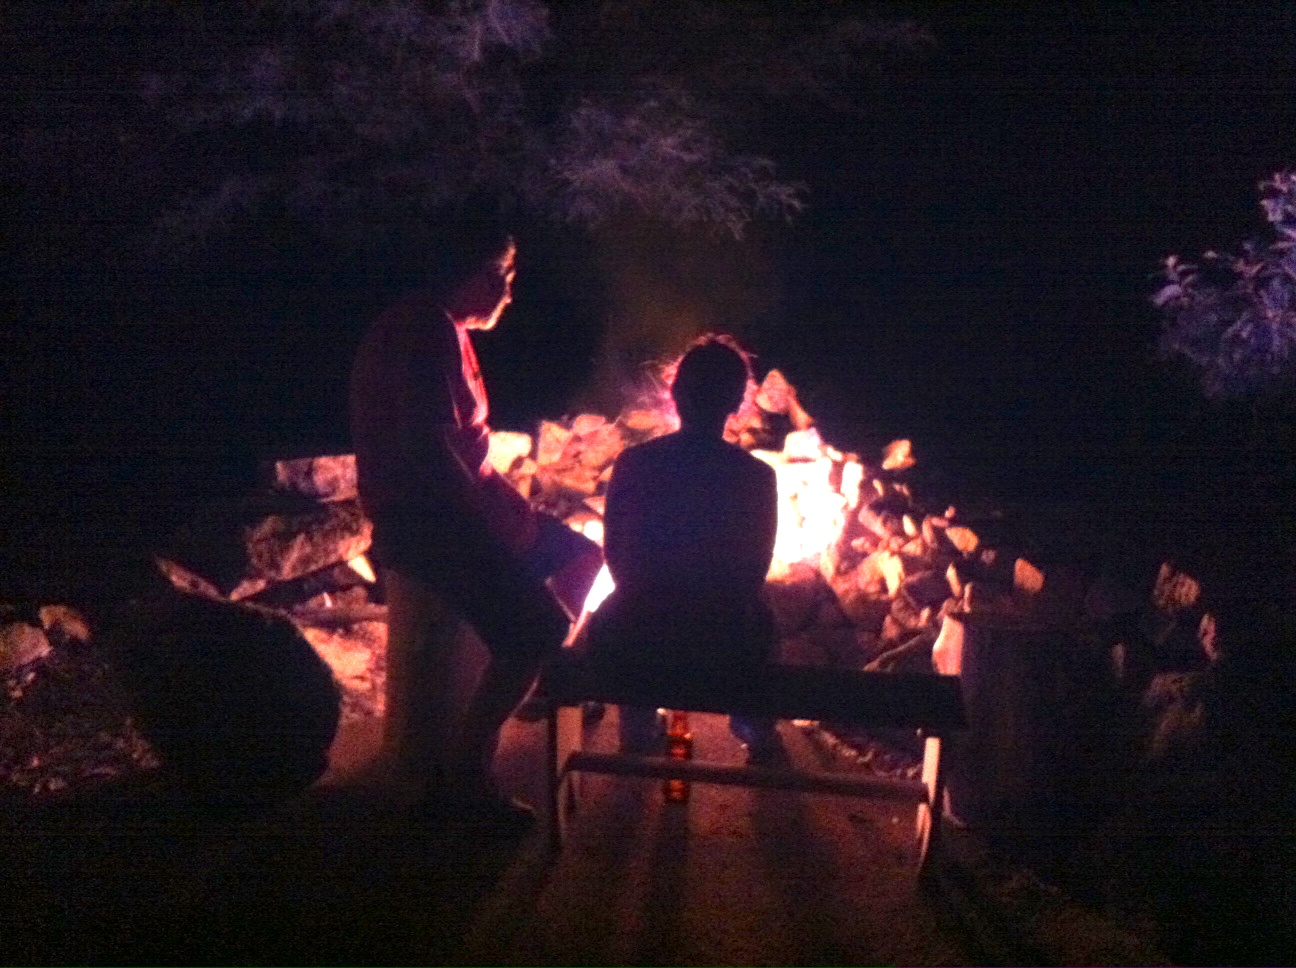 We've been grilling over the fire next to Scott's house.